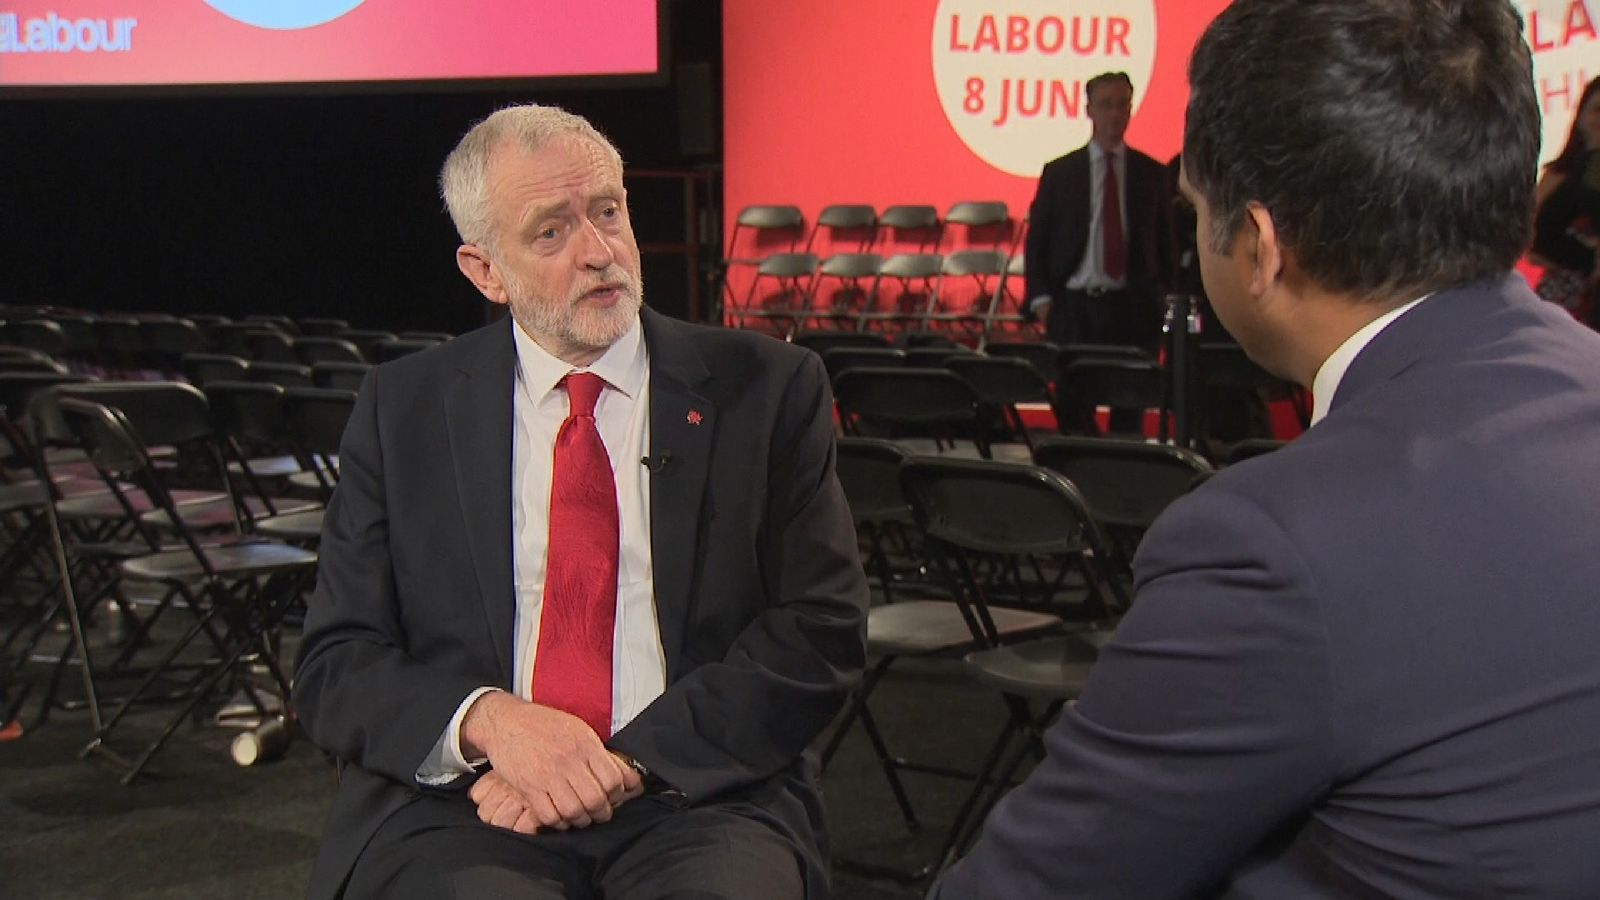 Jeremy Corbyn tells Sky News&#39 Political Editor that he 'visualises a Labour government&#39